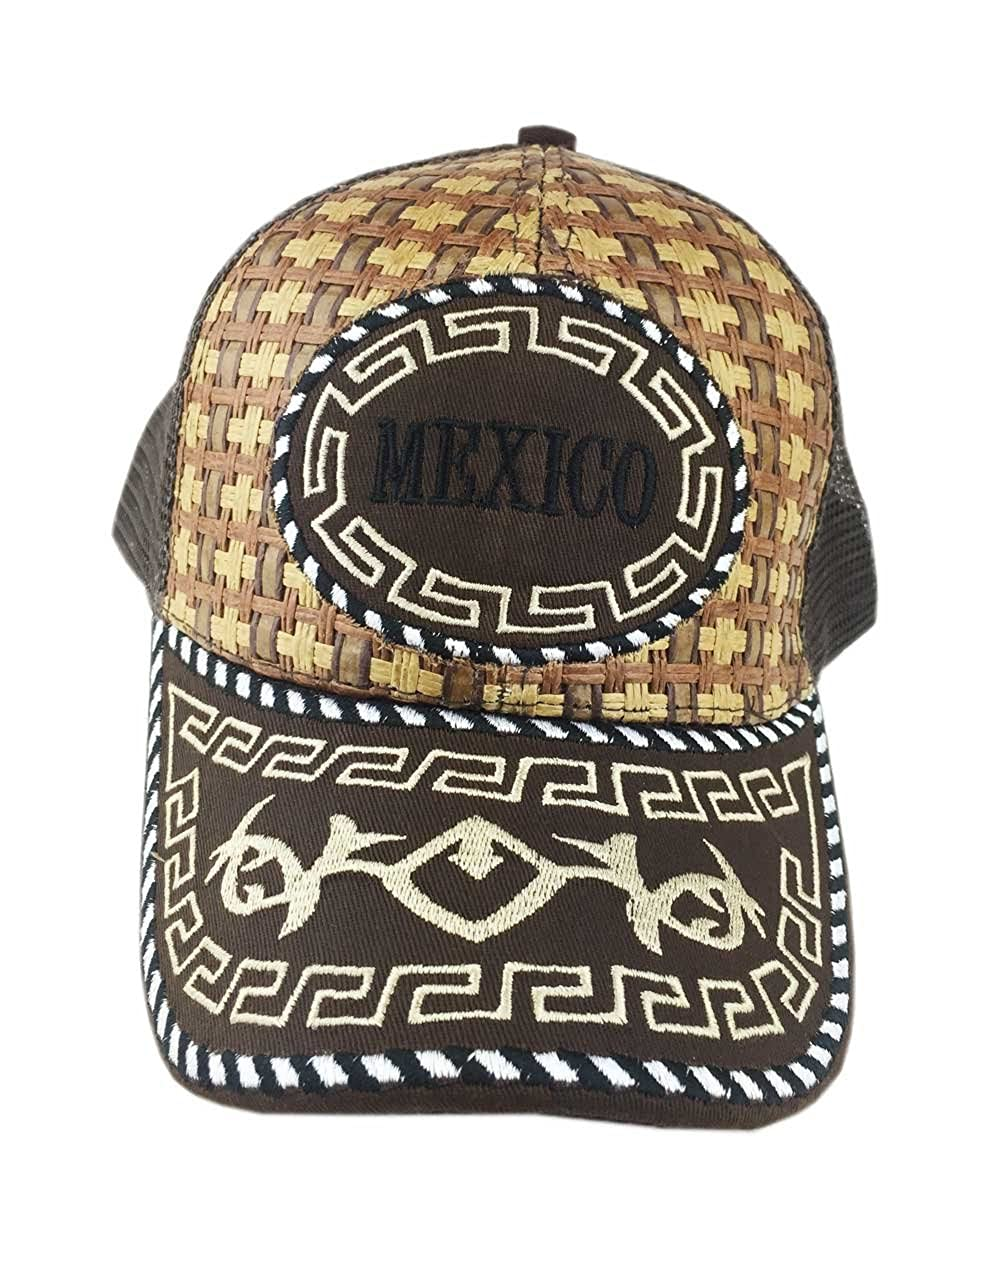 Aesthetinc Western Wear Chara Mexico Straw Trucker Hat Cap (Brown) at  Amazon Men s Clothing store  f9801e87401